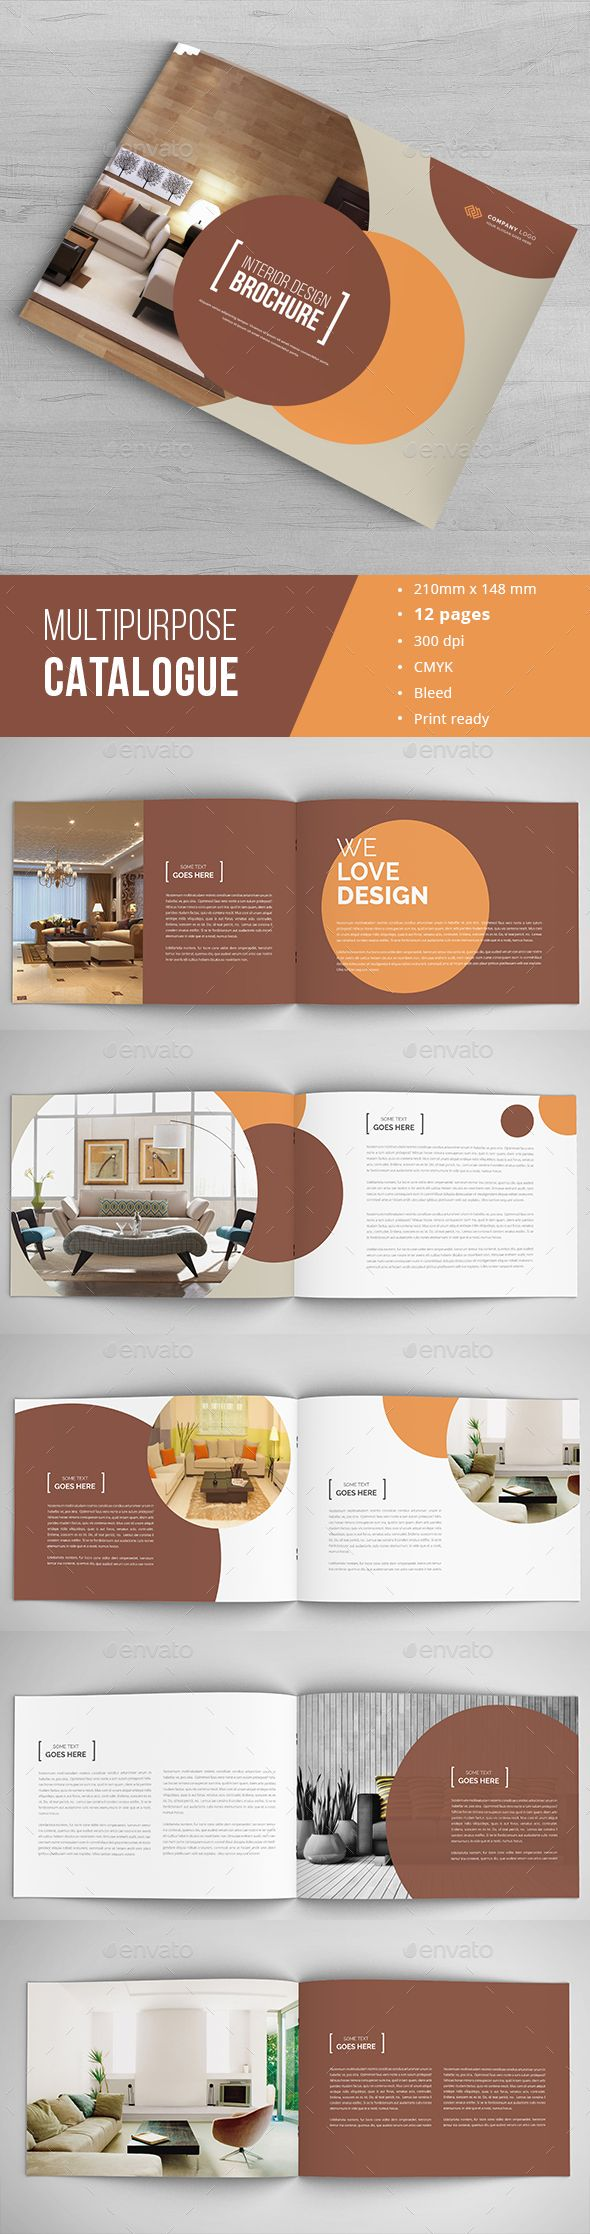 Interior Design Brochure Brochure Design Catalog Design Layout